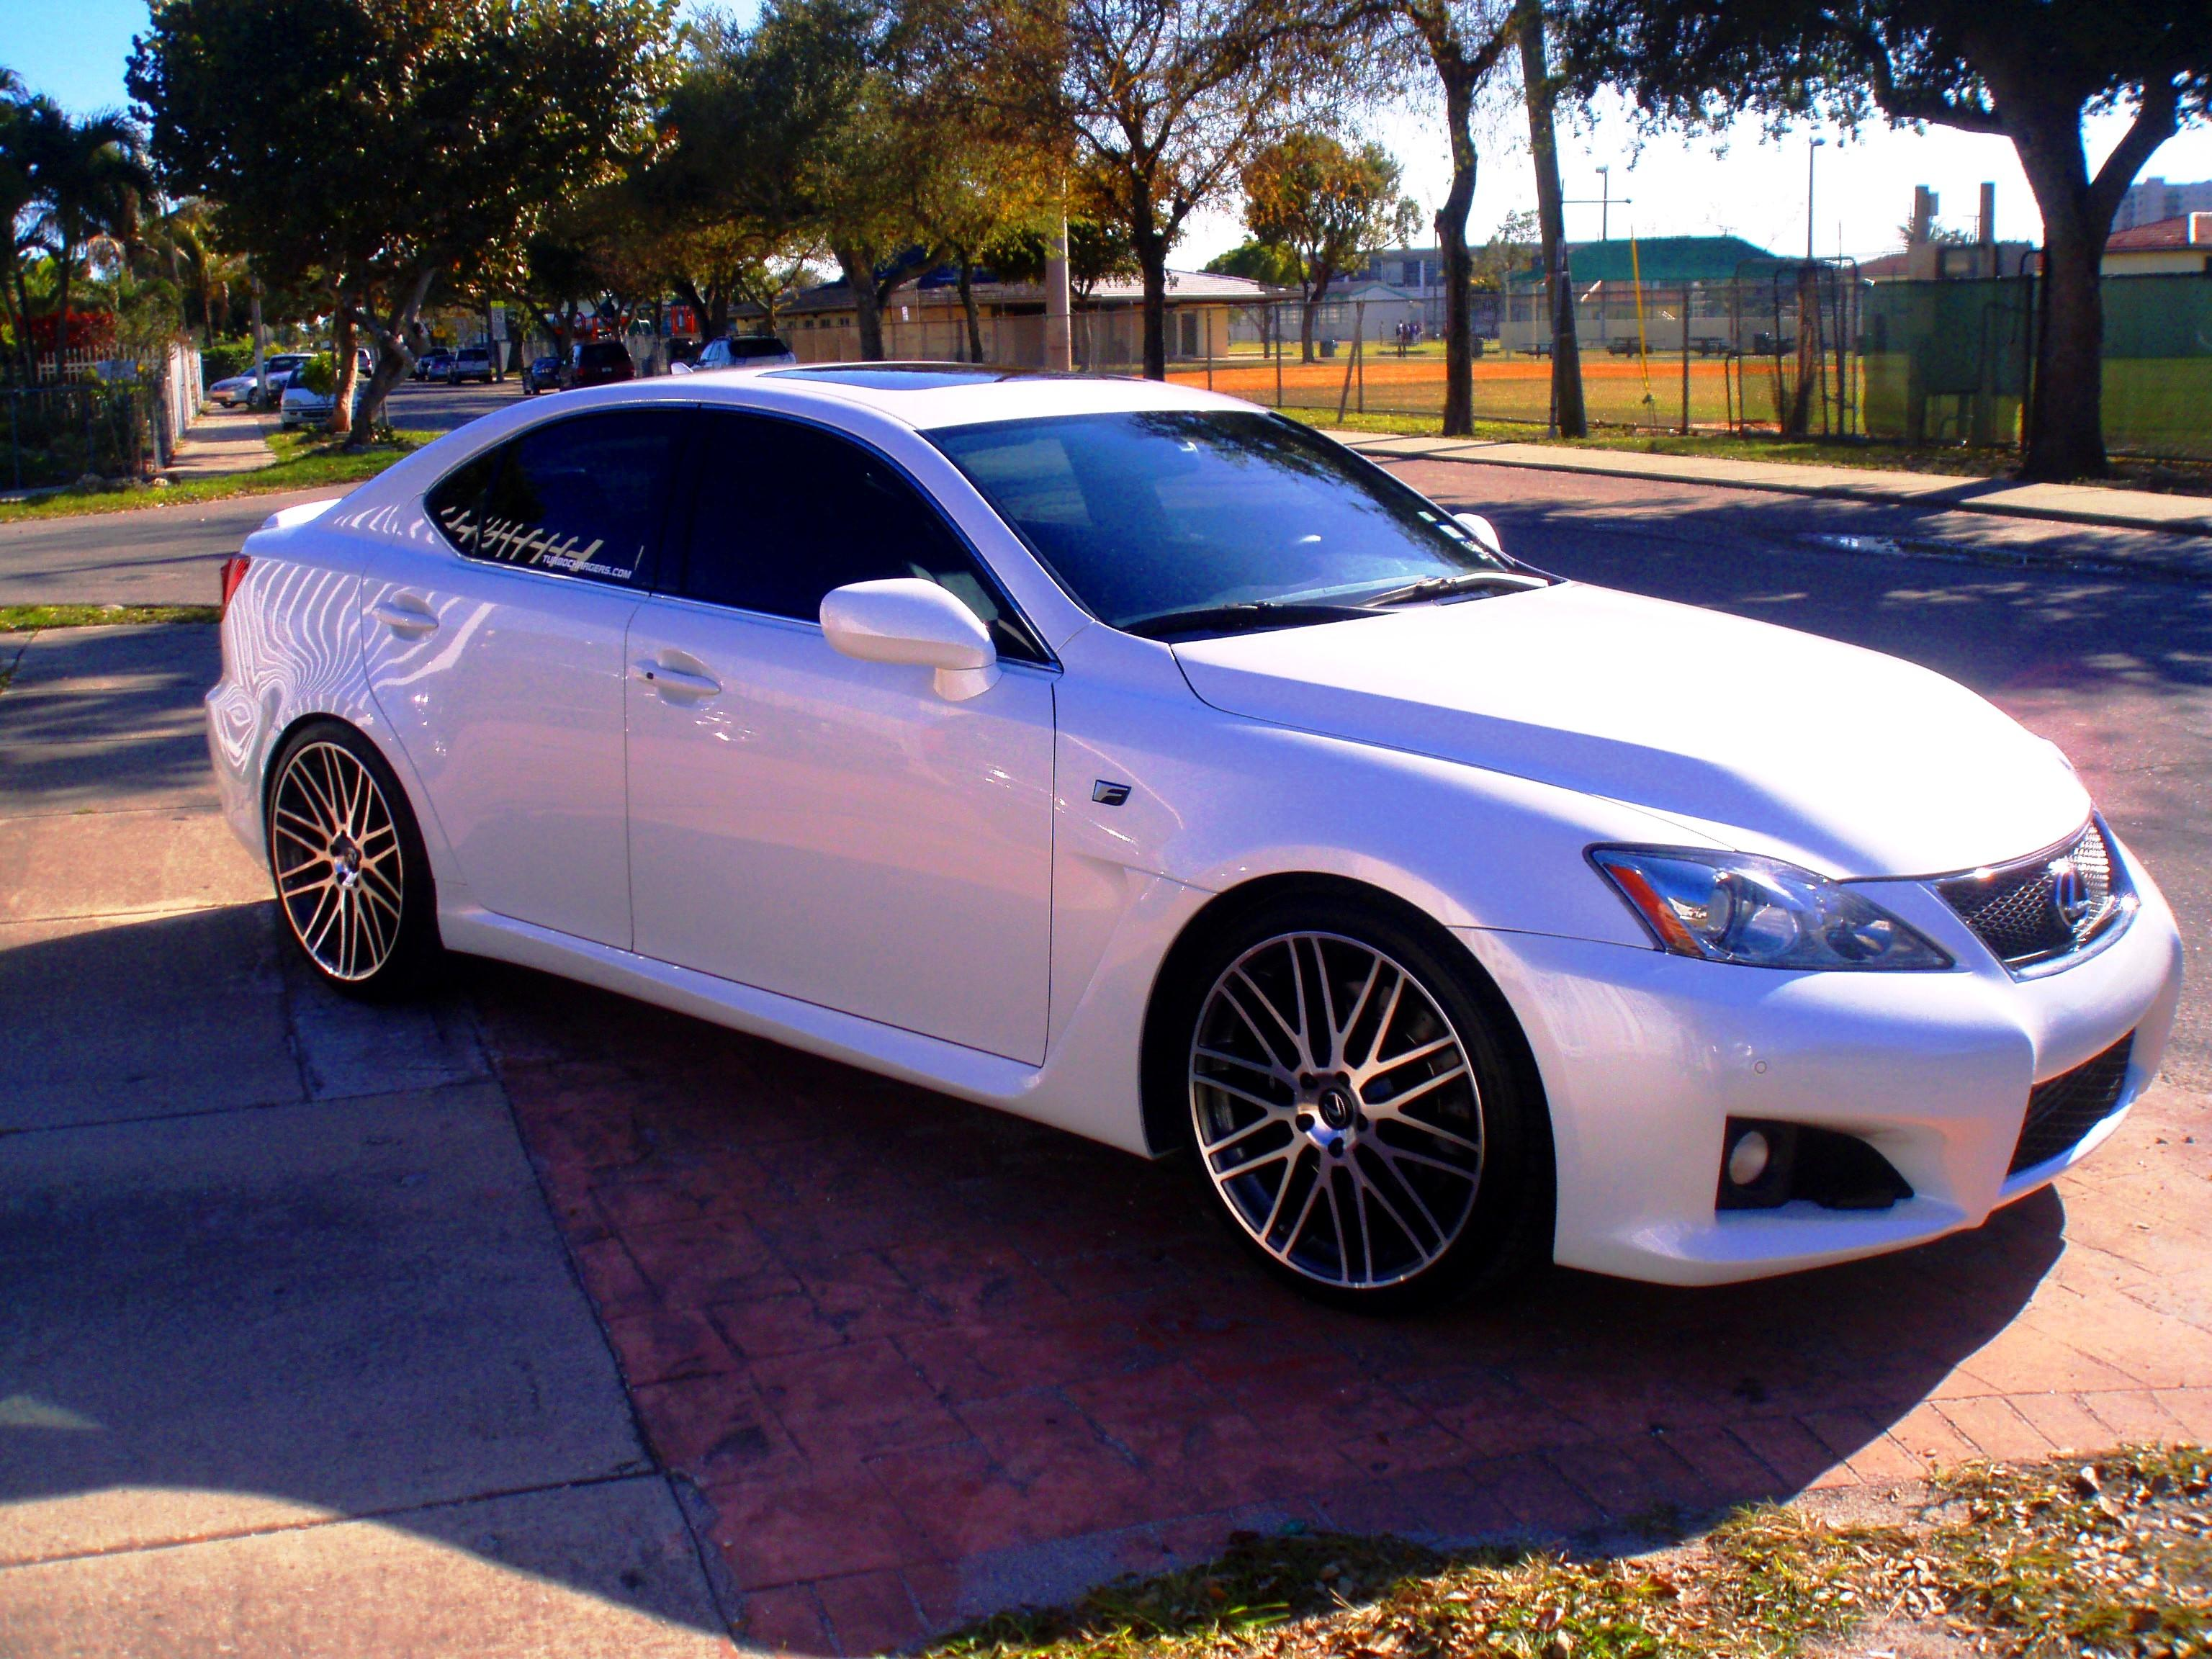 ursisterismine's 2008 Lexus IS F